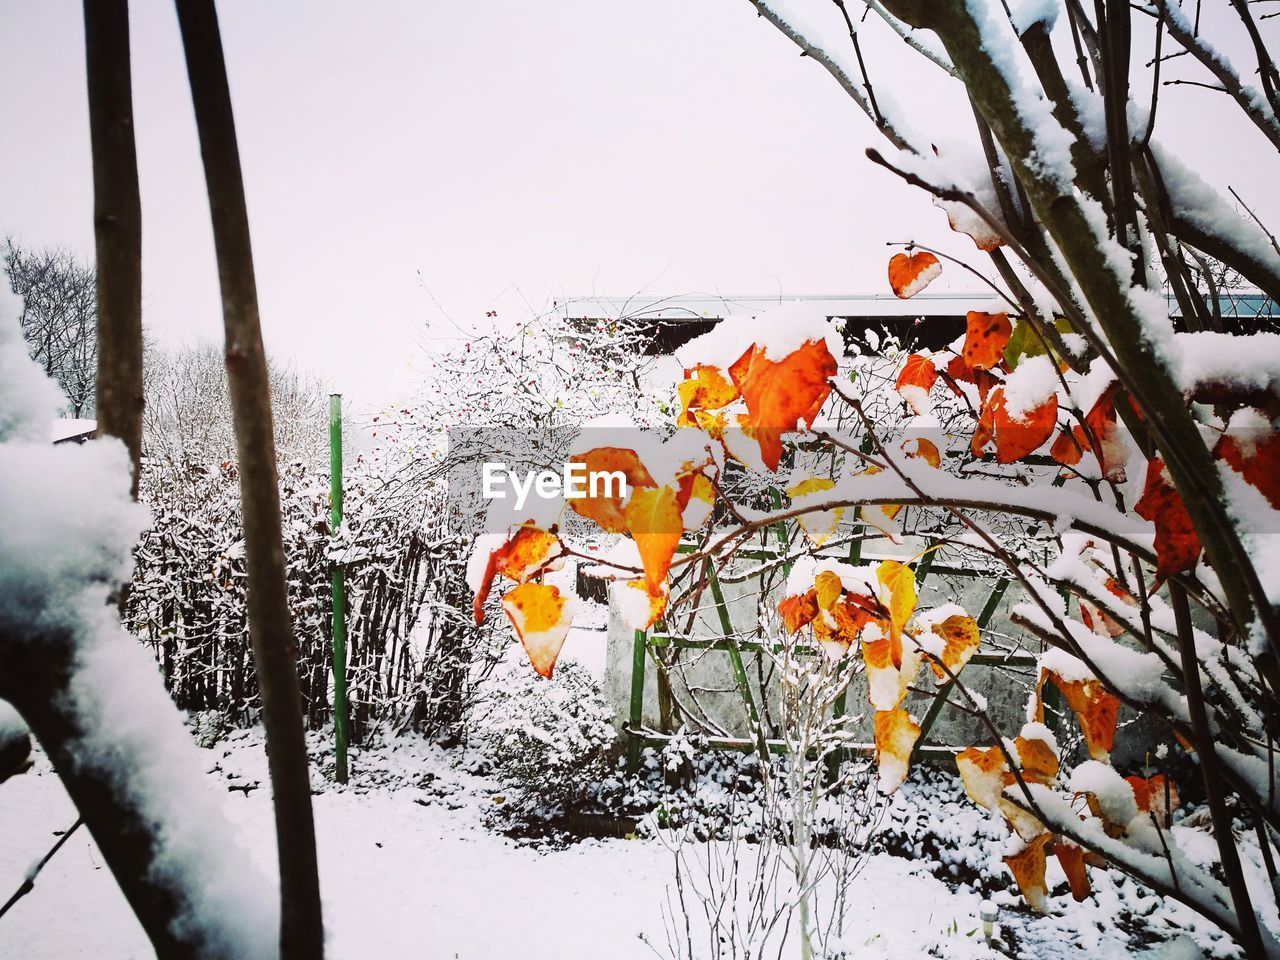 winter, snow, nature, cold temperature, beauty in nature, growth, flower, weather, outdoors, no people, plant, sky, tree, branch, day, freshness, fragility, blooming, close-up